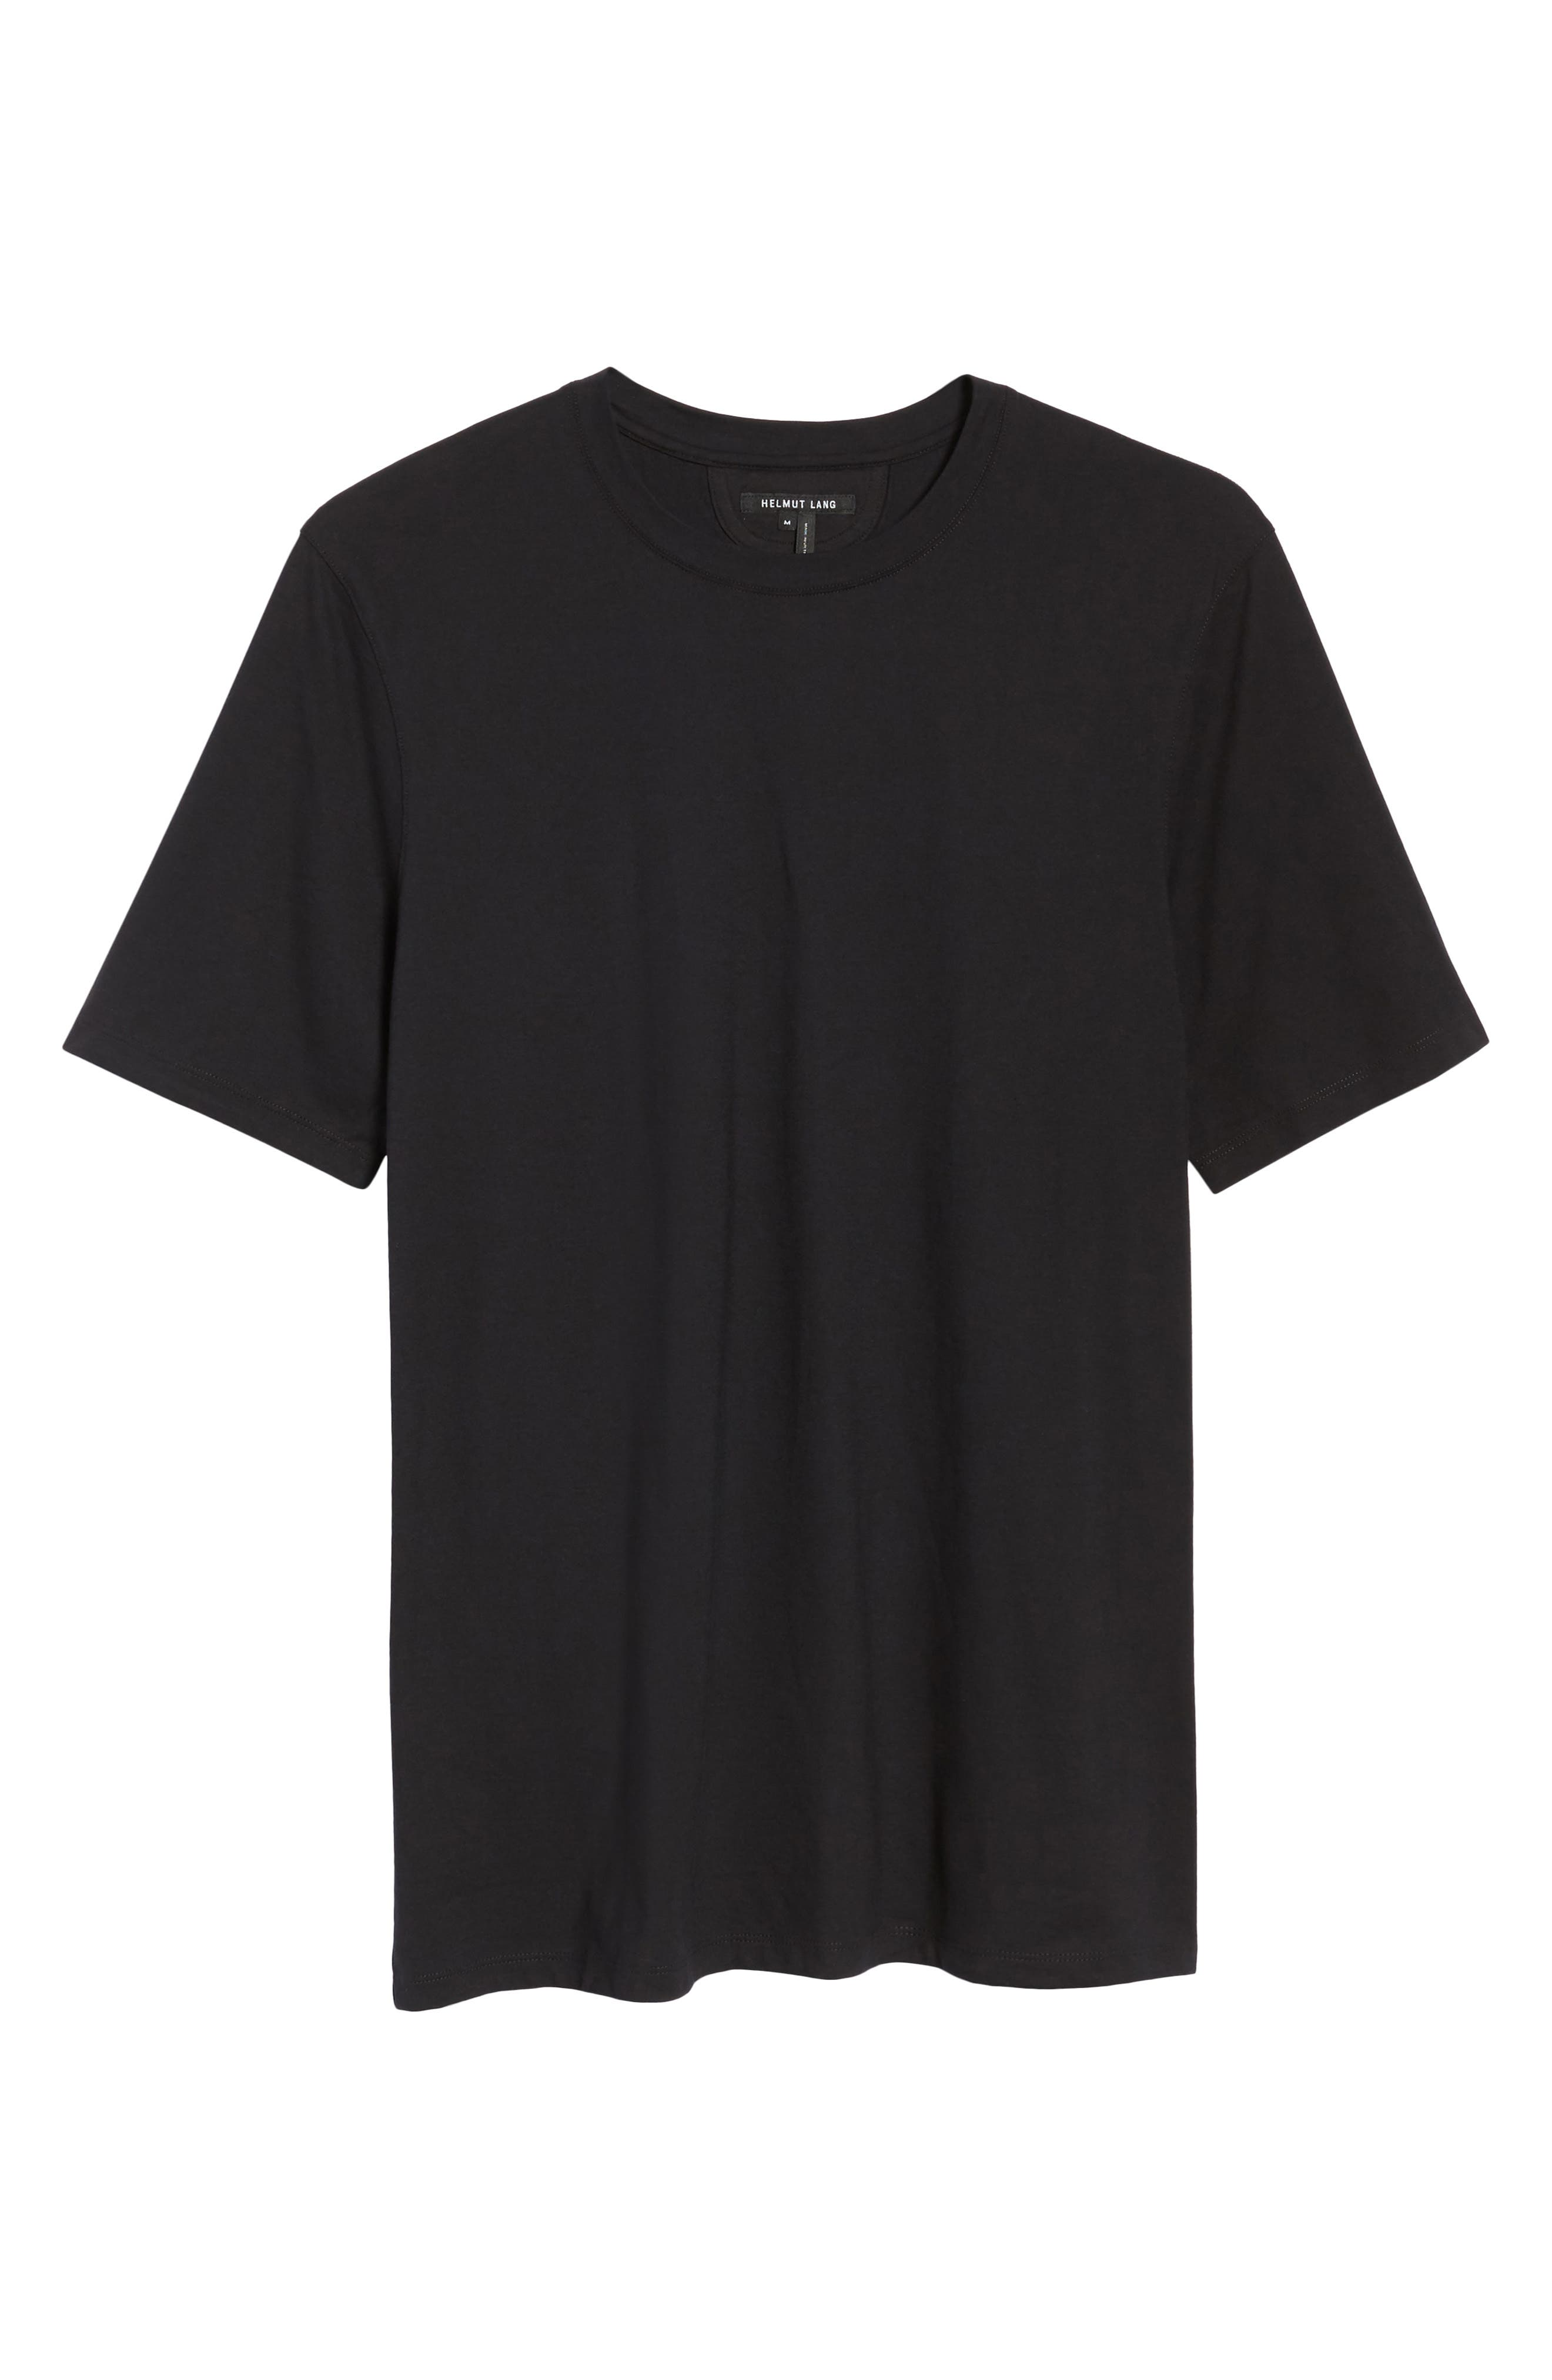 Heritage T-Shirt,                             Main thumbnail 1, color,                             Black